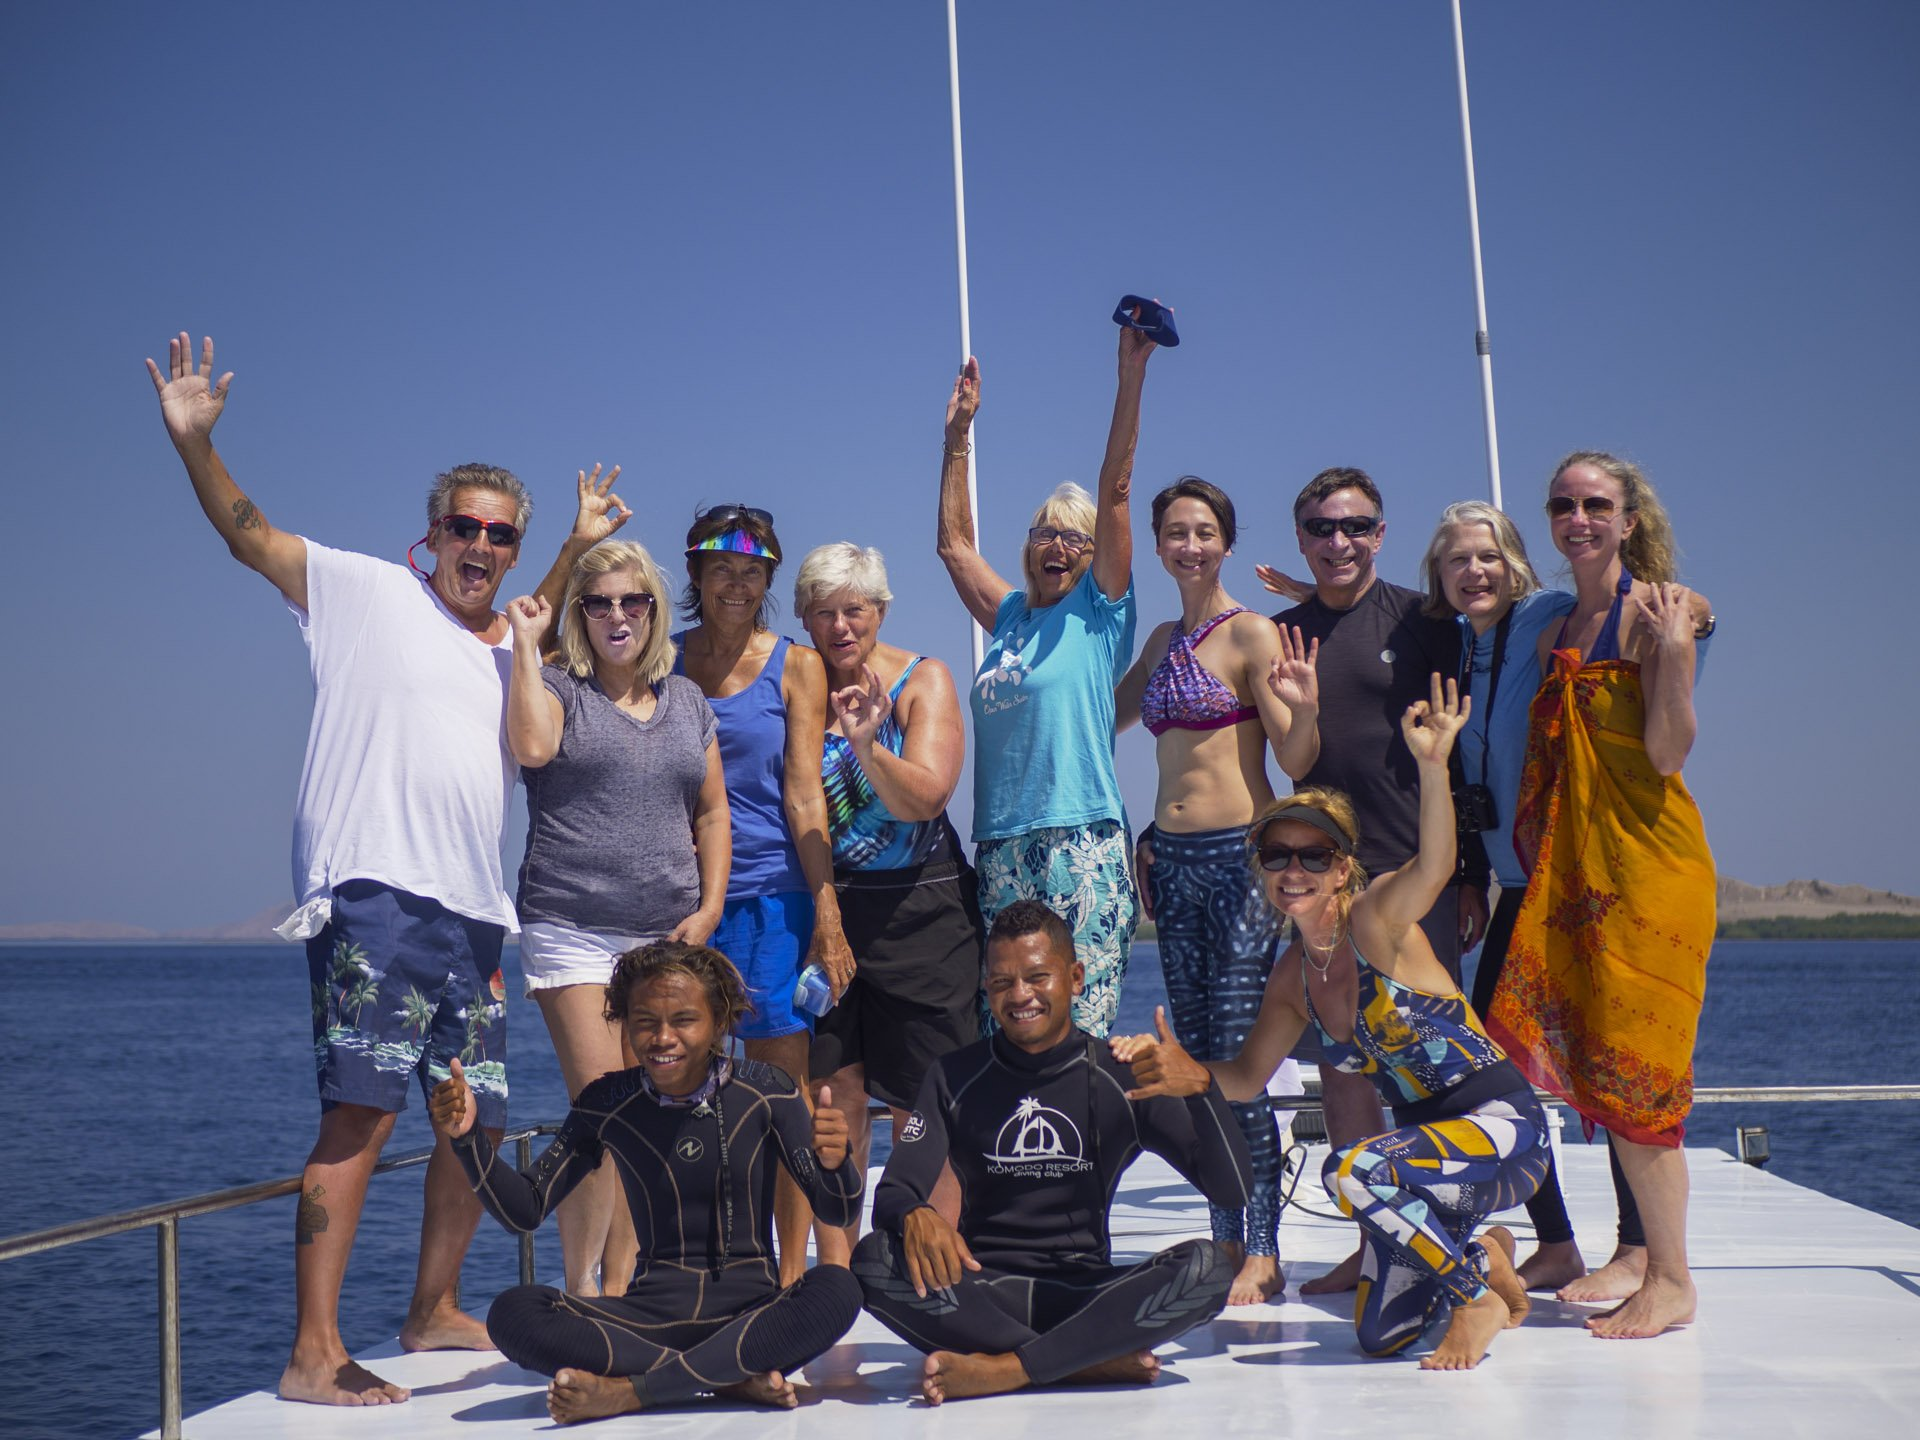 Group Photo of happy Snorkel Venture guests